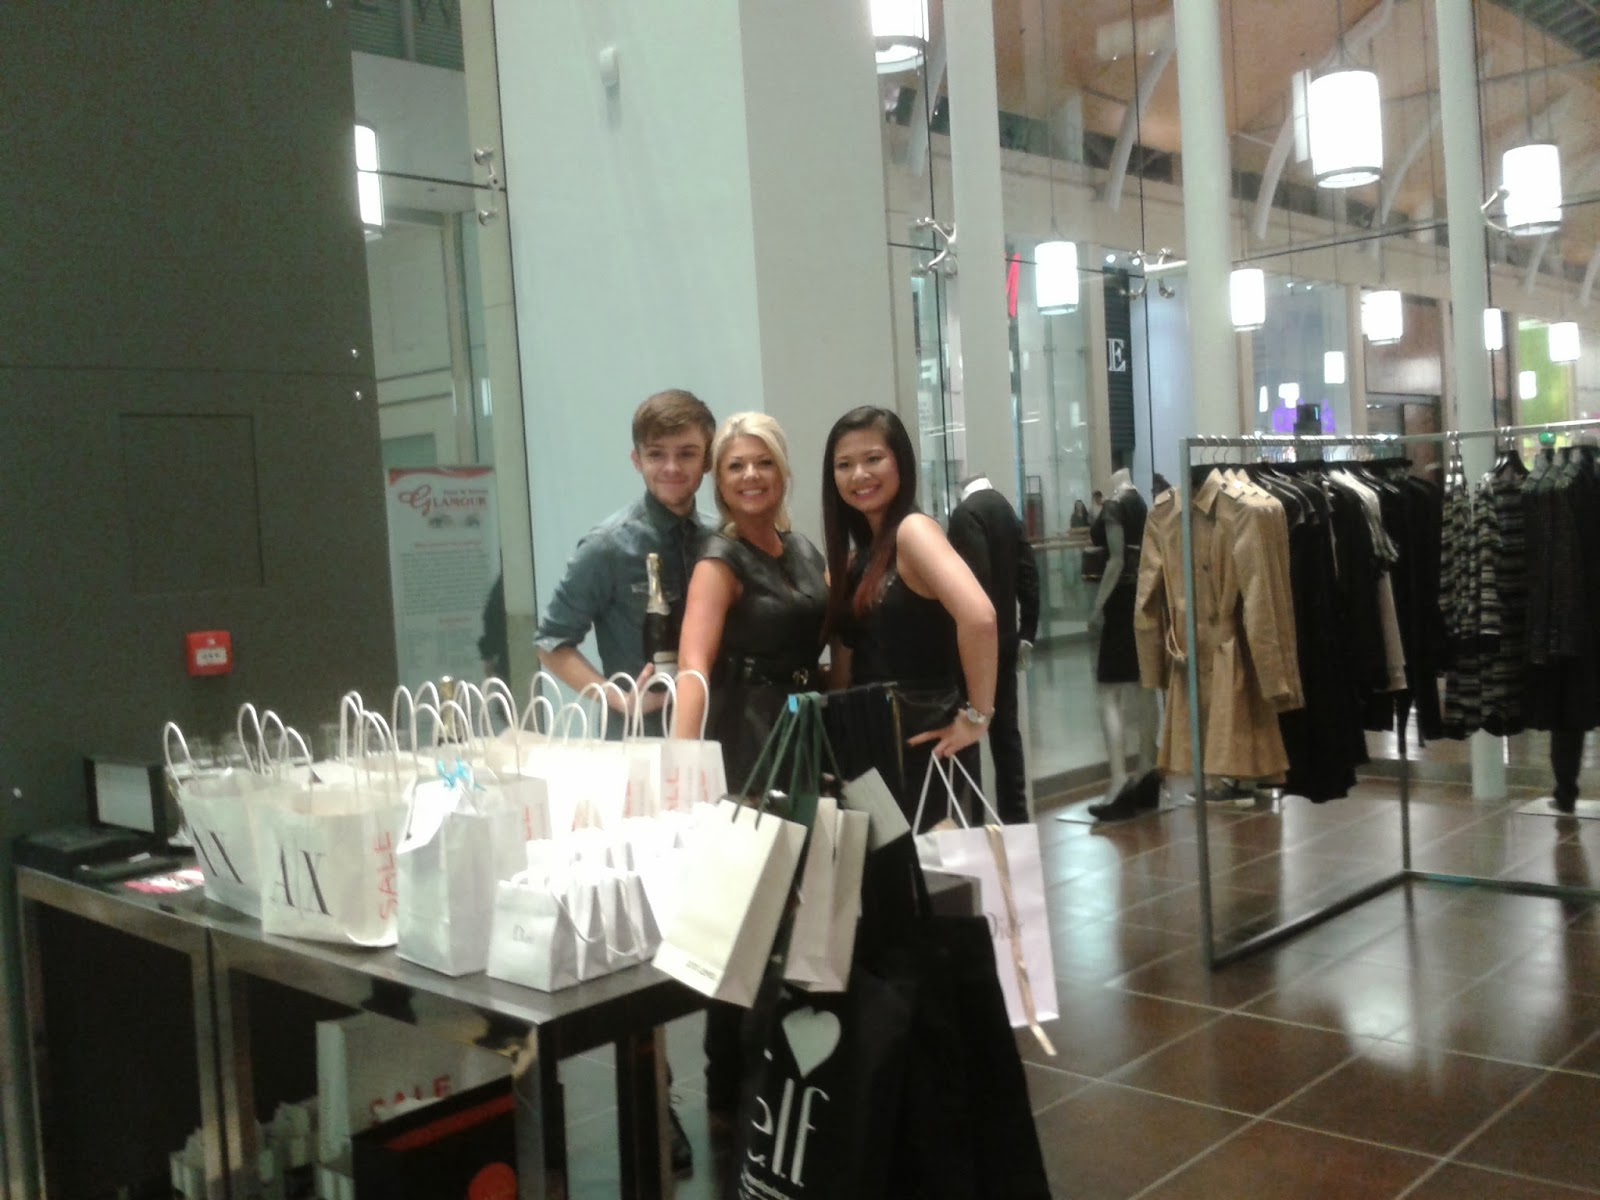 AX Armani Exchange Cardiff, St David's 2, Designer shops Cardiff, Press Events Cardiff